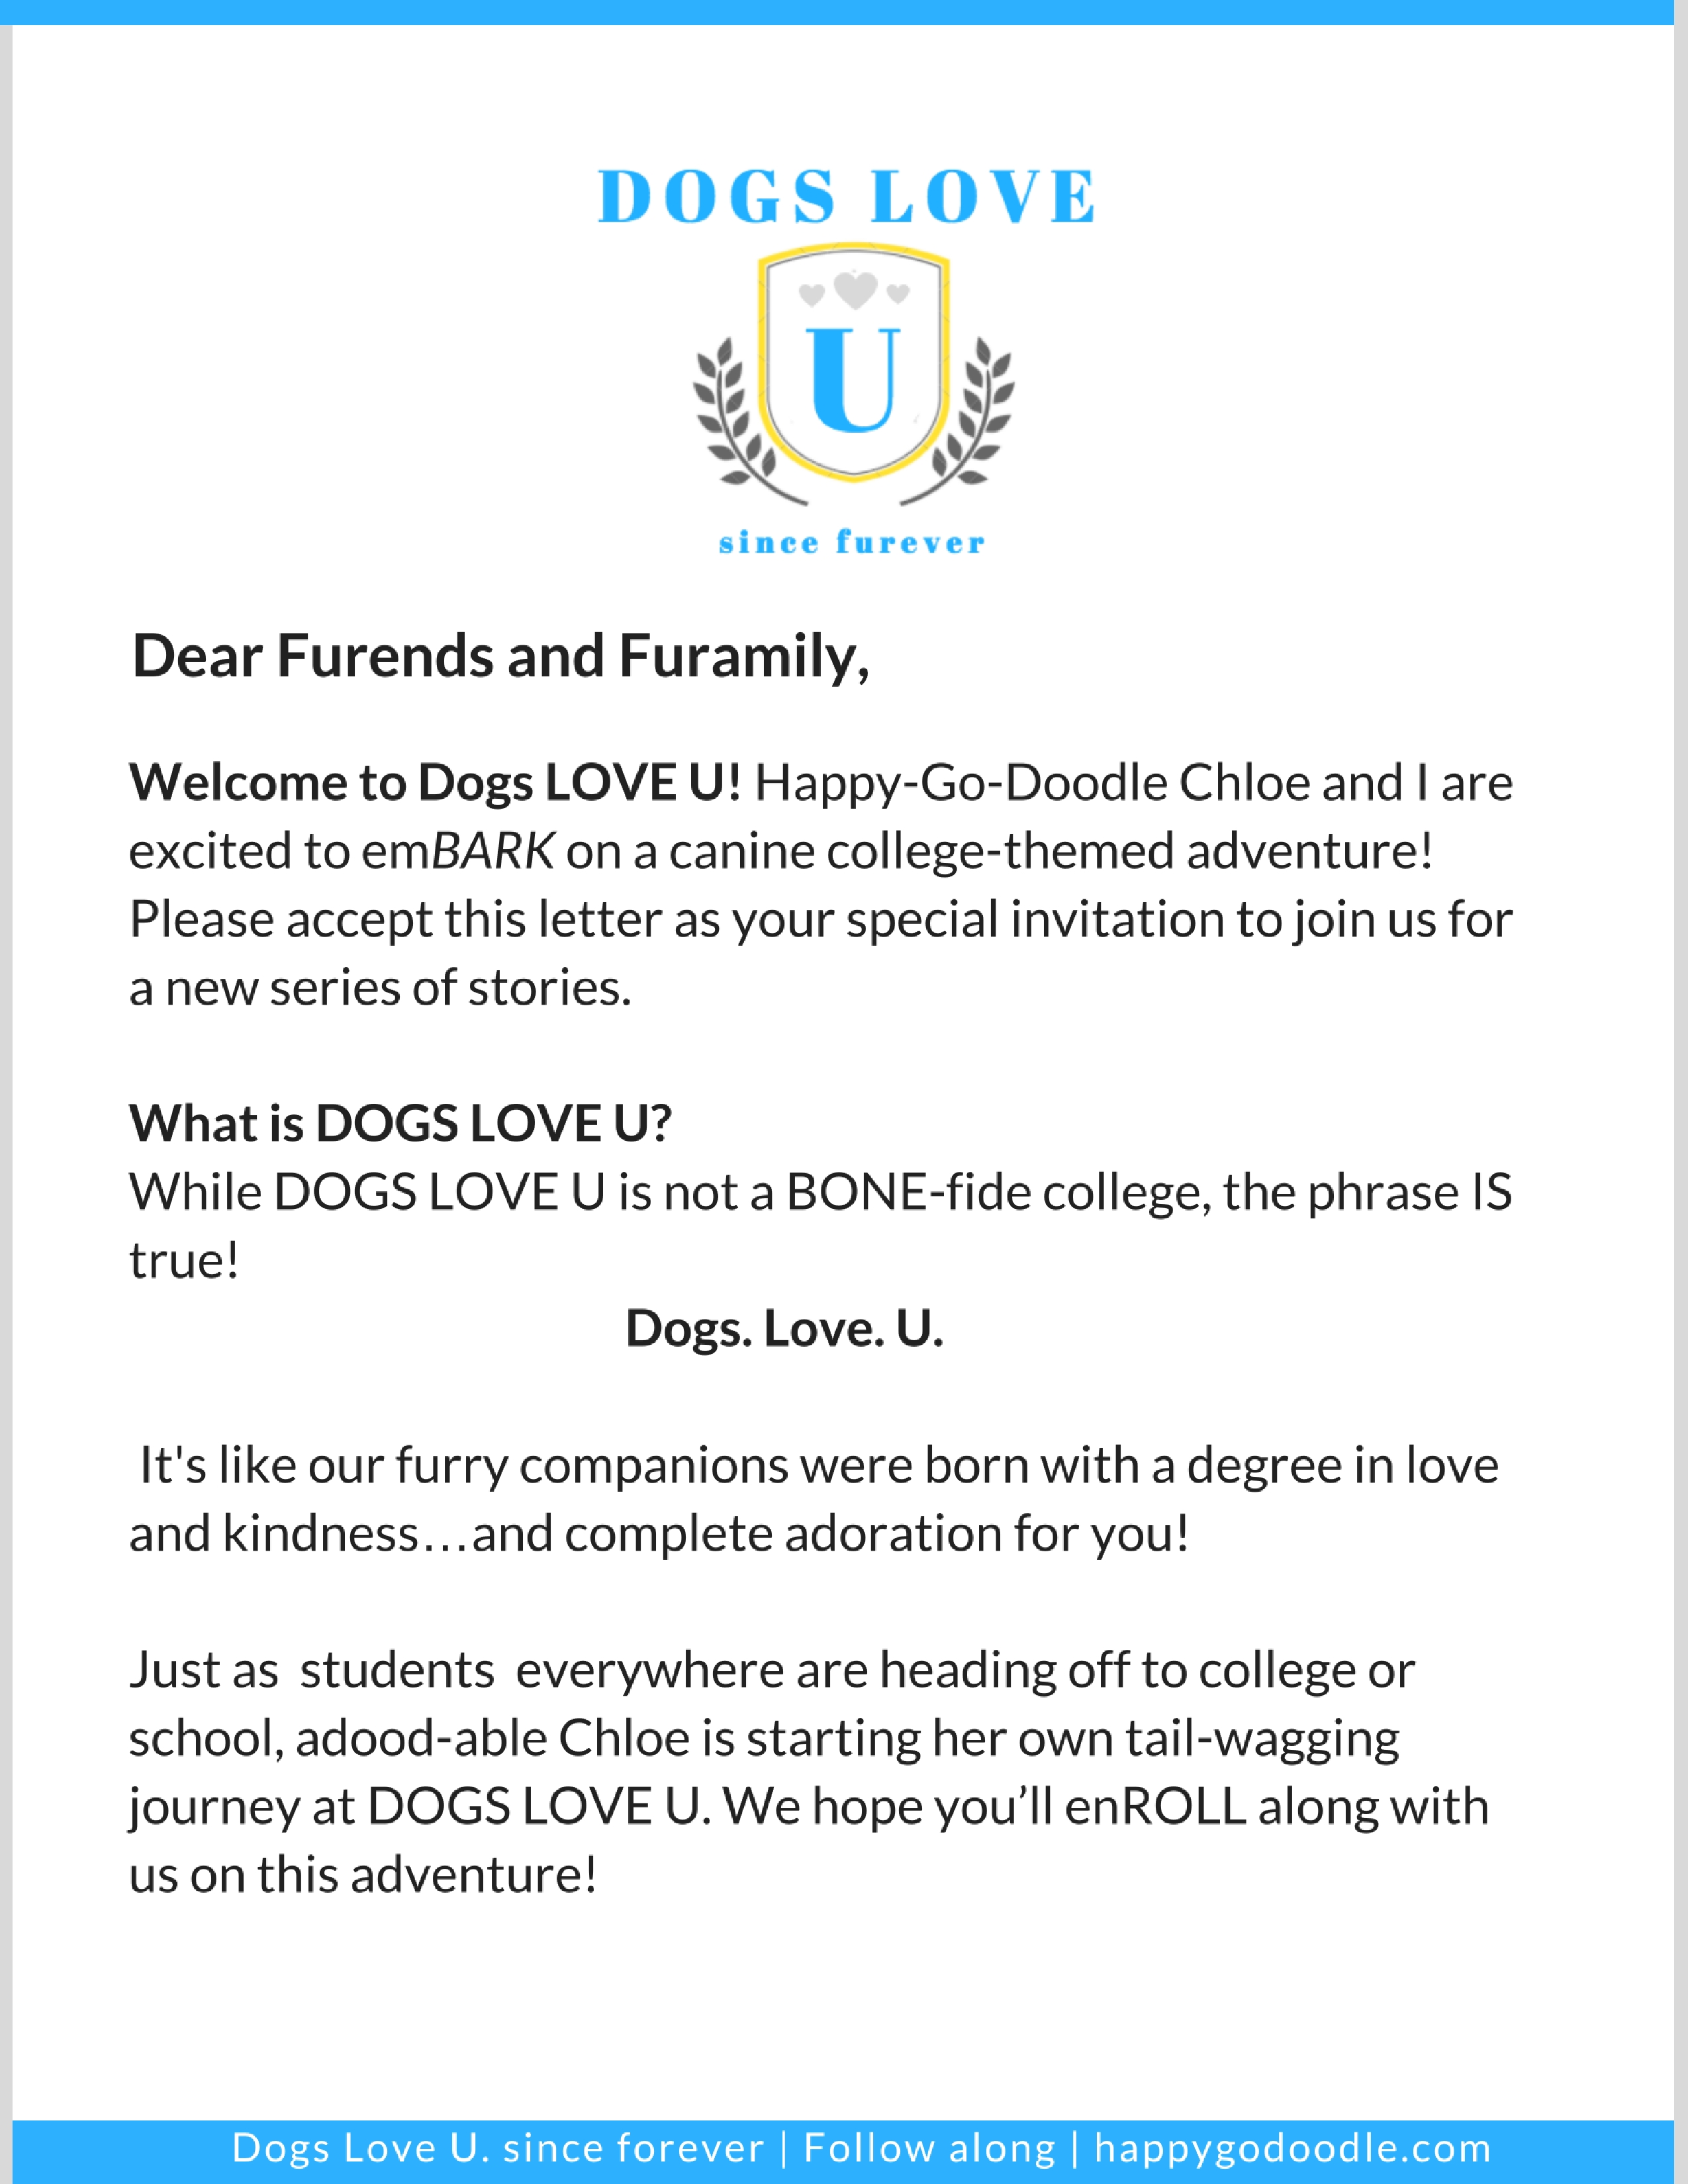 Dear Furends and Family: A Dogs Love U Welcome Letter for a college-themed dog blog series